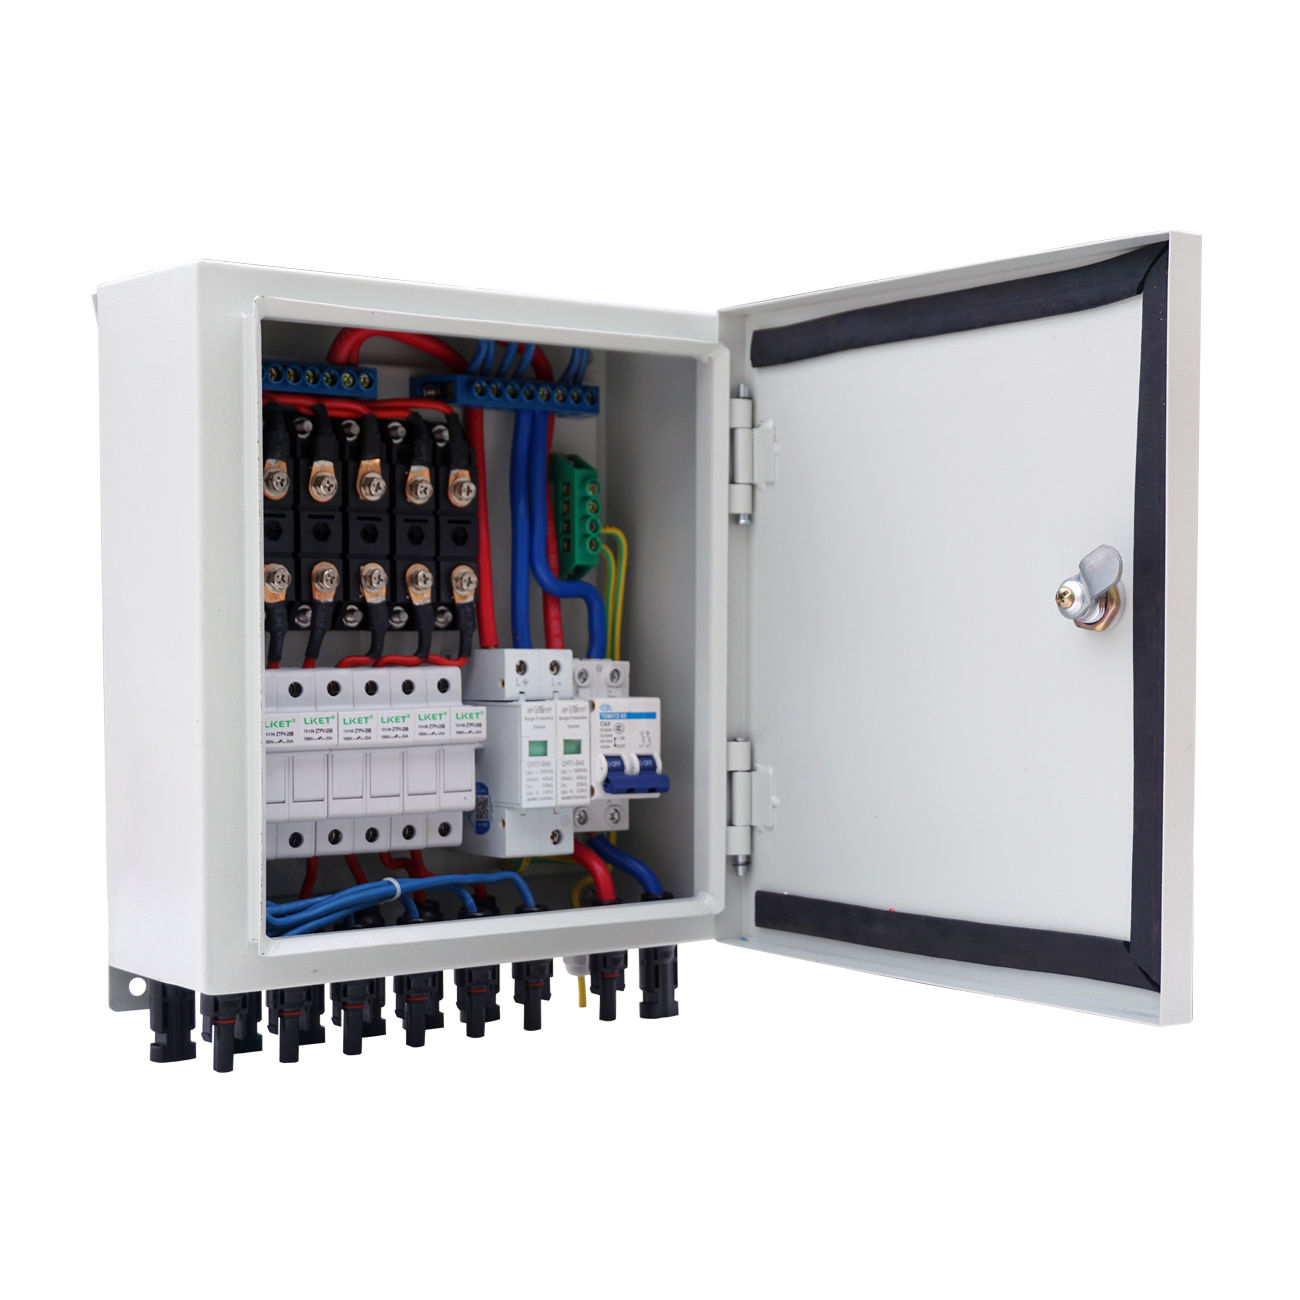 6 string solar pv combiner box w circuit breakers surge ae wiring diagram [ 1300 x 1300 Pixel ]